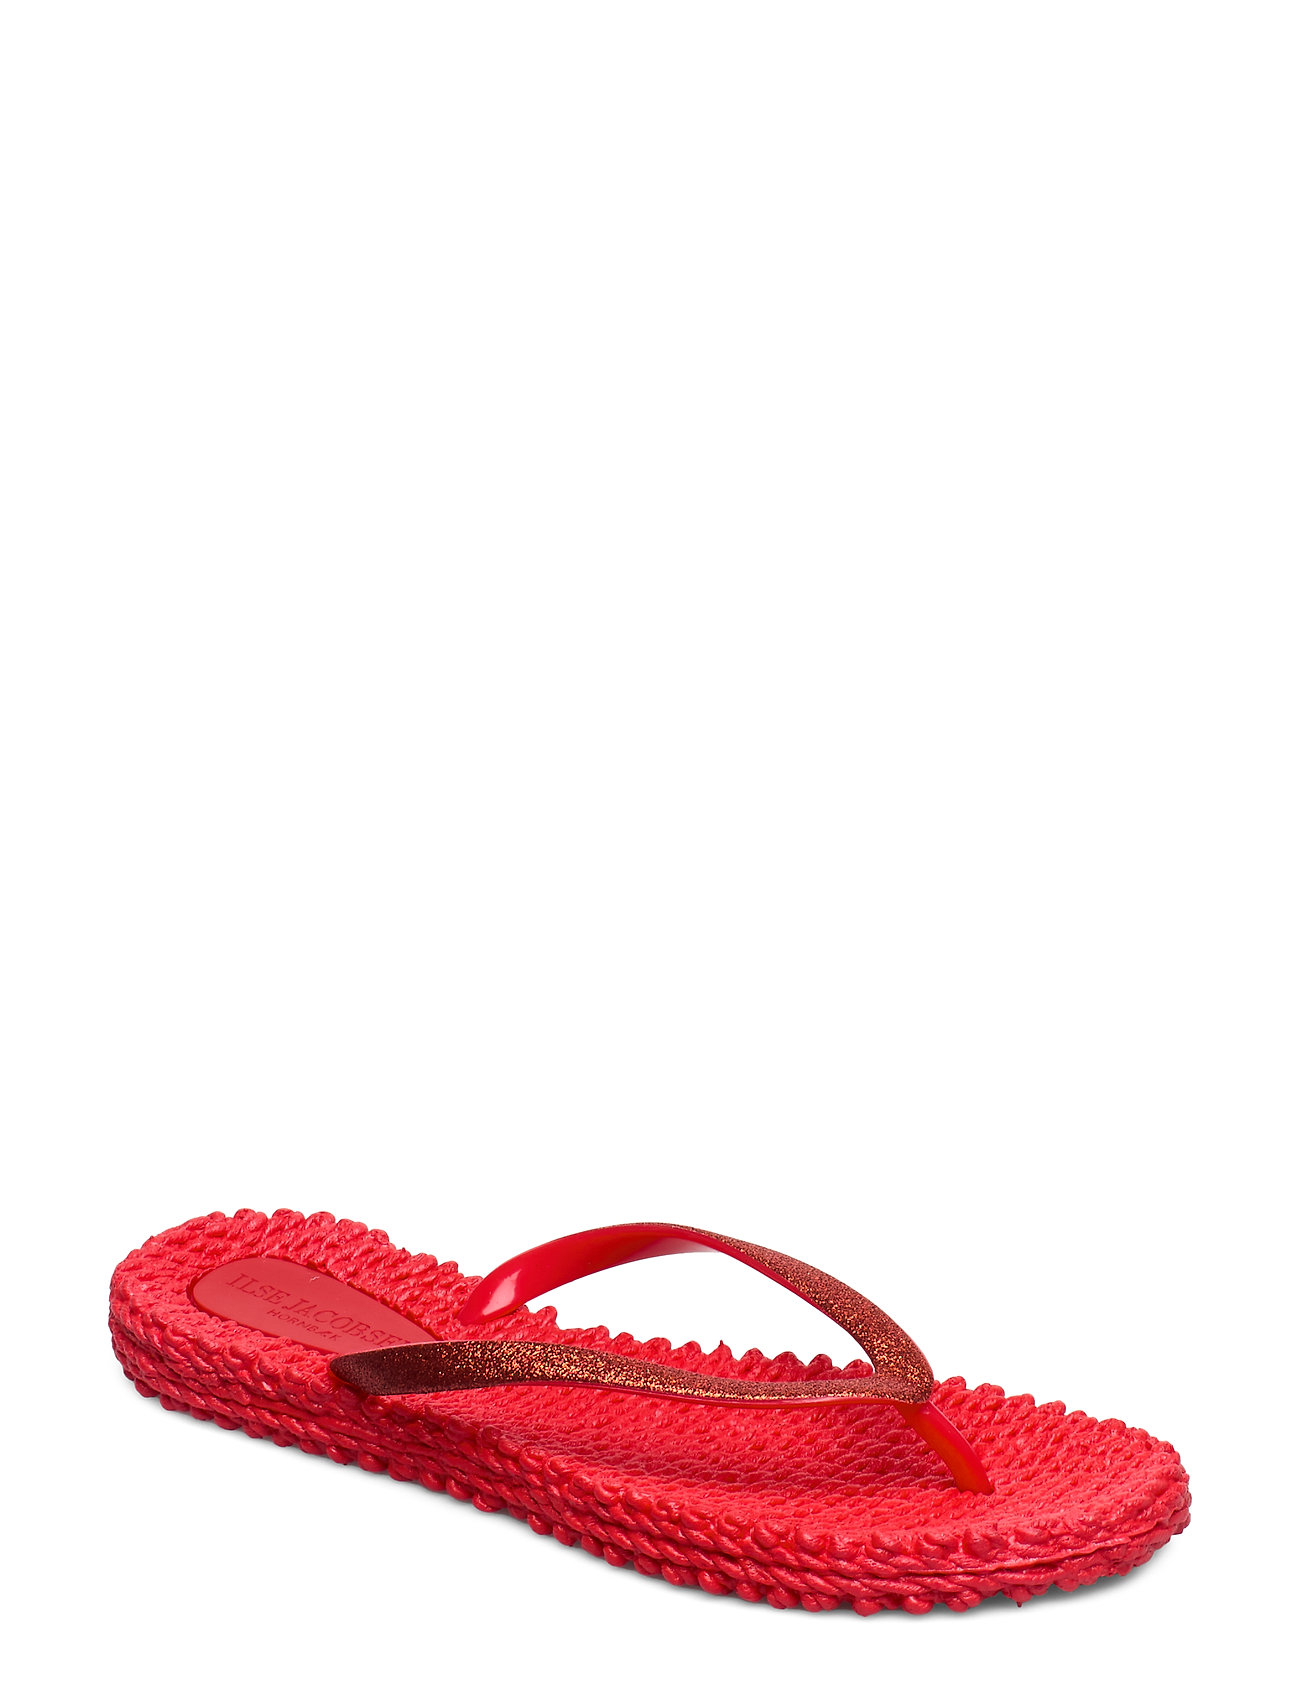 Ilse Jacobsen FLIPFLOP WITH GLITTER - DEEP RED